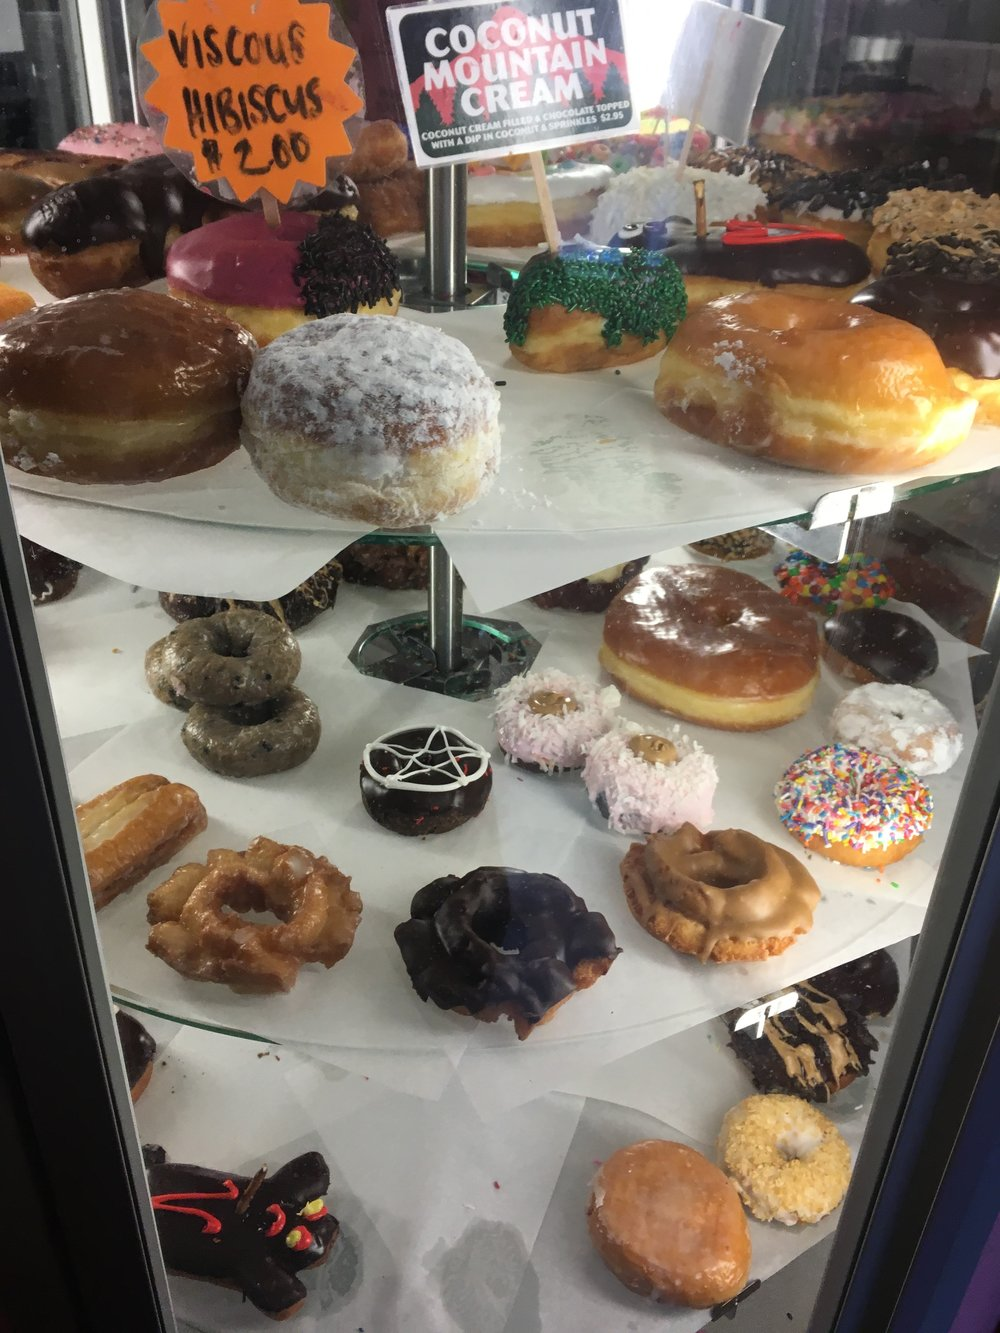 All the doughnuts to choose from